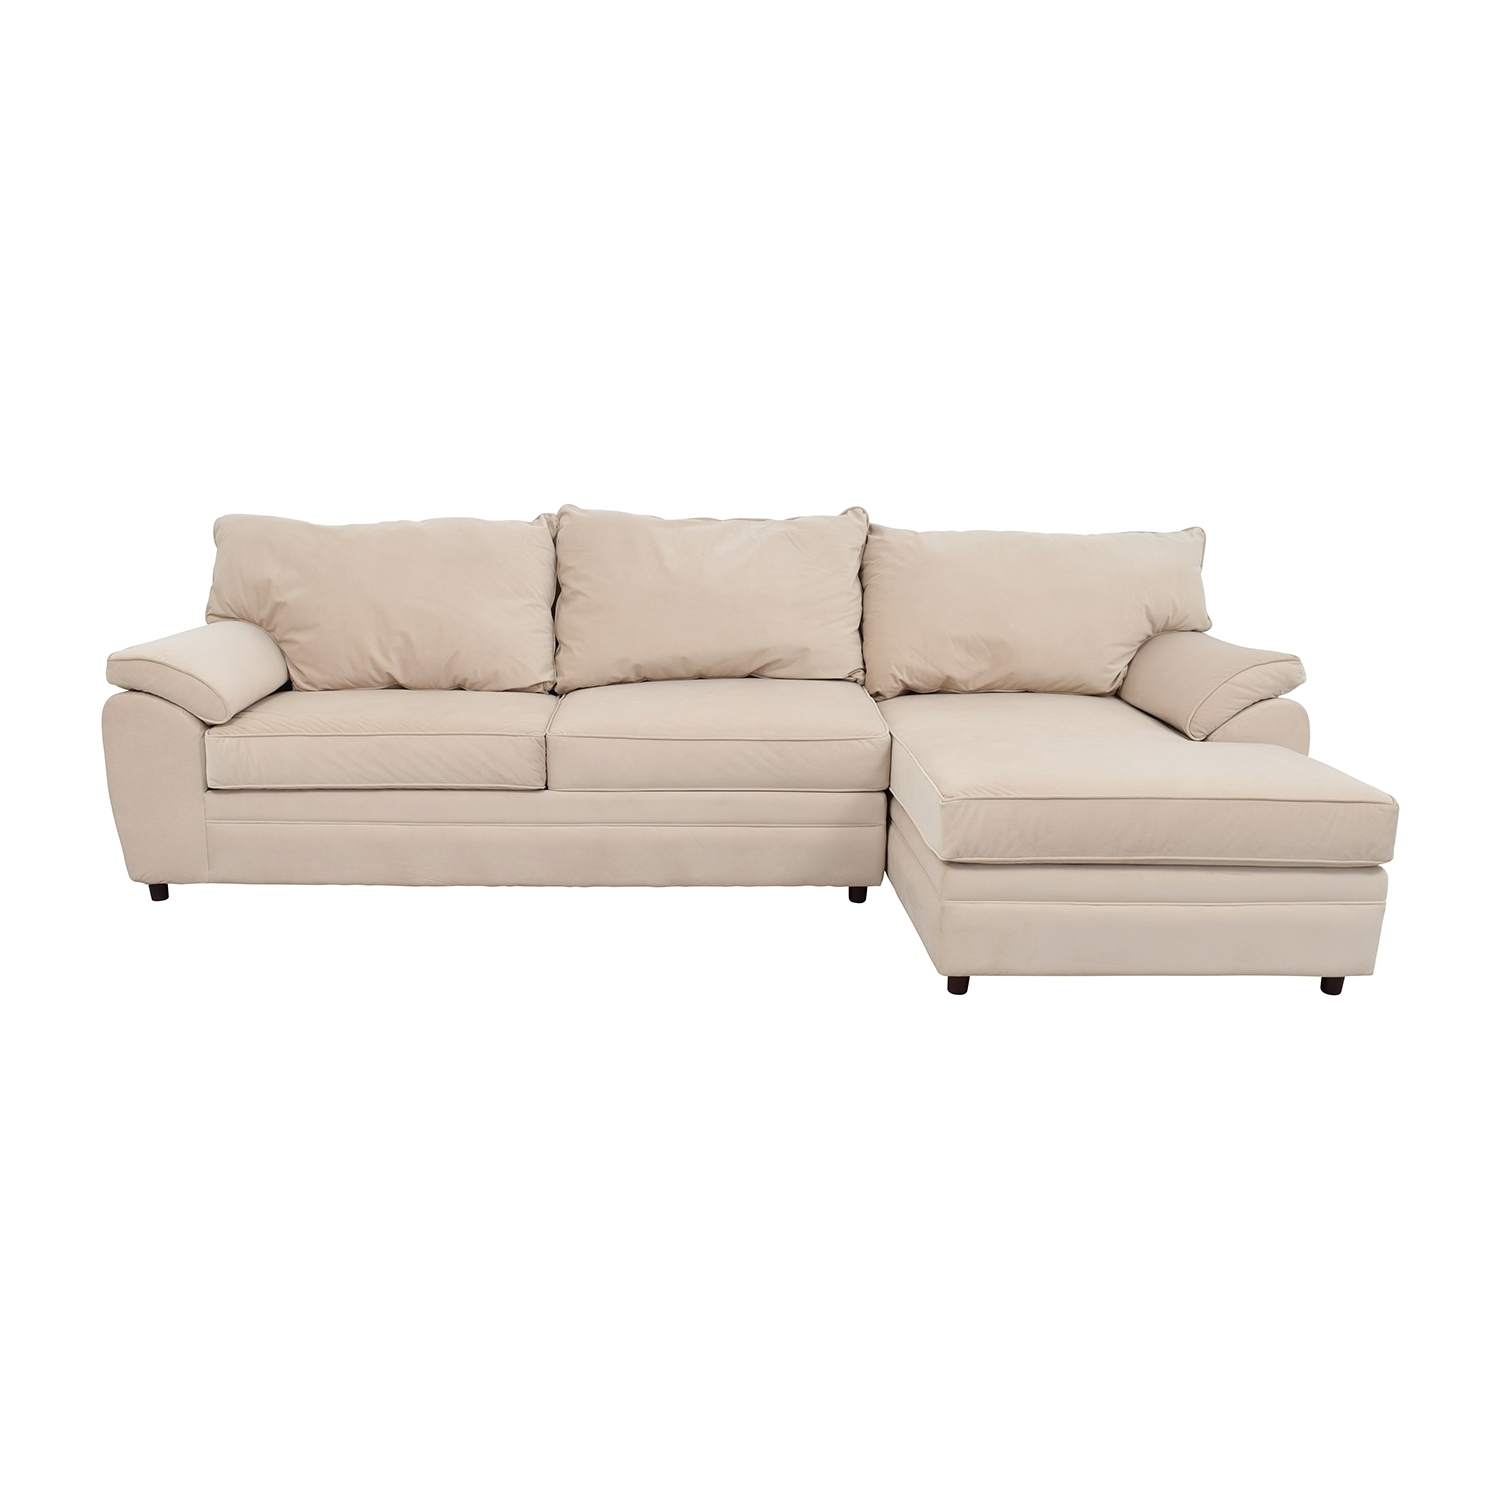 [%33% Off – Bob's Furniture Bob Furniture Off White Right Chaise In Well Known Bobs Furniture Chaises|Bobs Furniture Chaises With Preferred 33% Off – Bob's Furniture Bob Furniture Off White Right Chaise|Newest Bobs Furniture Chaises Regarding 33% Off – Bob's Furniture Bob Furniture Off White Right Chaise|Preferred 33% Off – Bob's Furniture Bob Furniture Off White Right Chaise In Bobs Furniture Chaises%] (View 1 of 15)